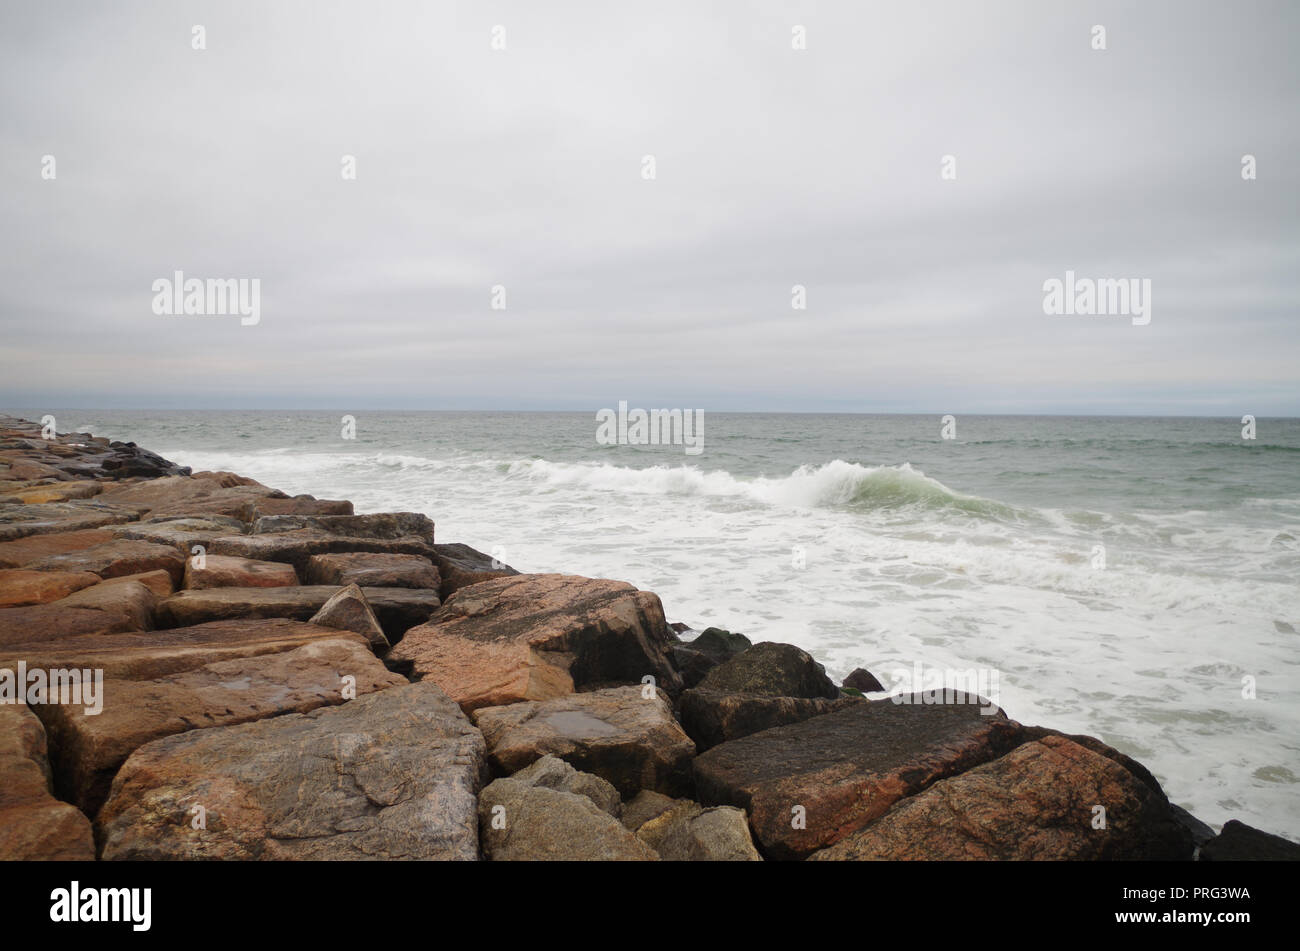 Beach on Block Island, Rhode Island USA - Stock Image